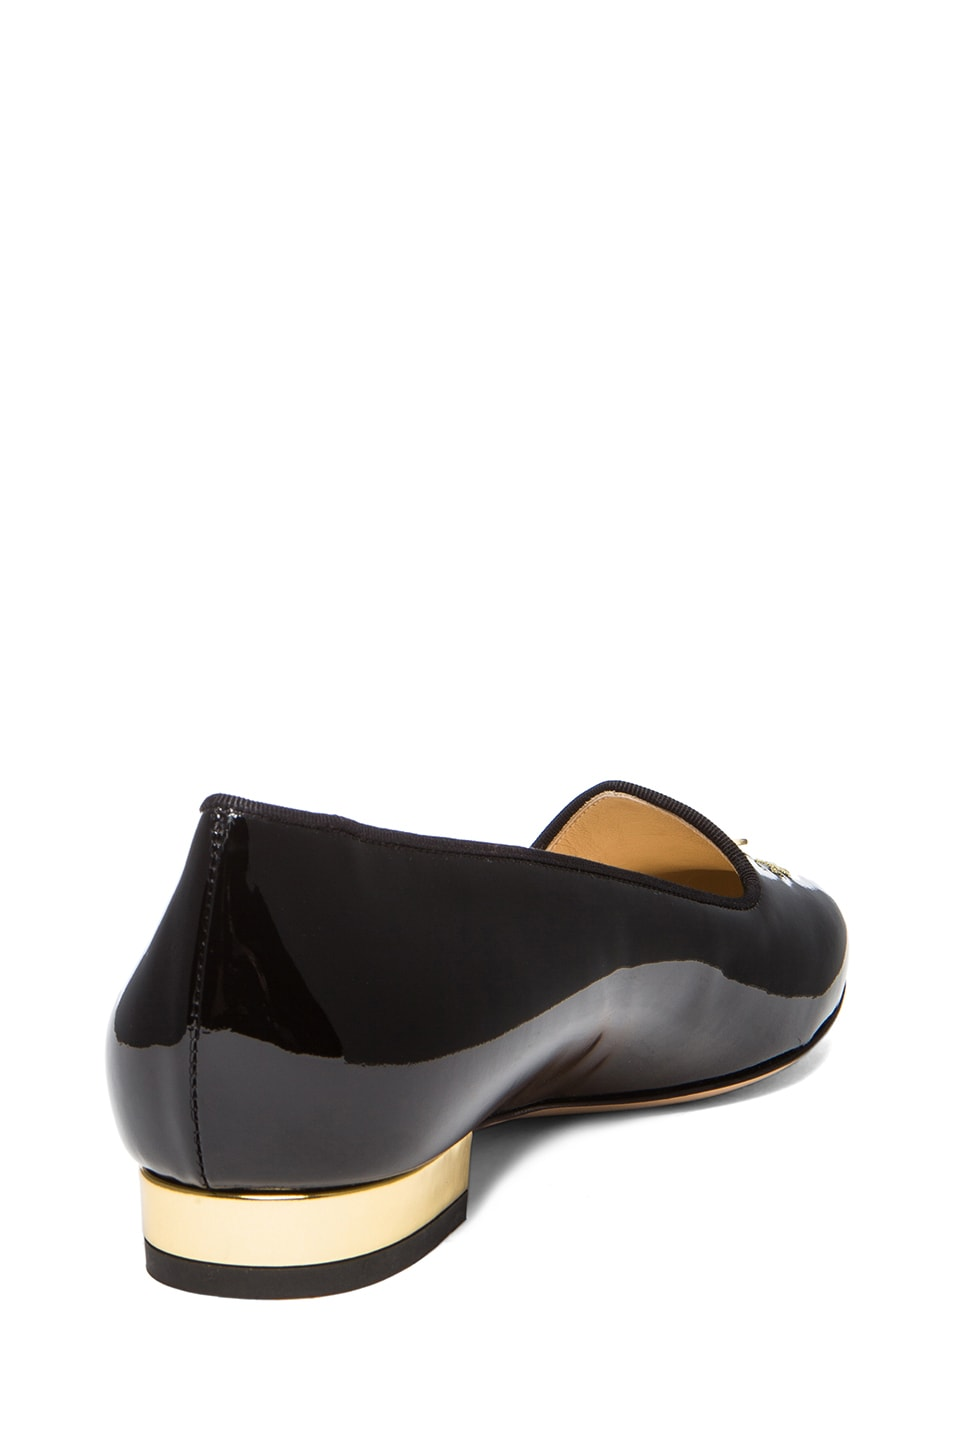 Image 3 of Charlotte Olympia Fashionably Late Patent Leather Flats in Black